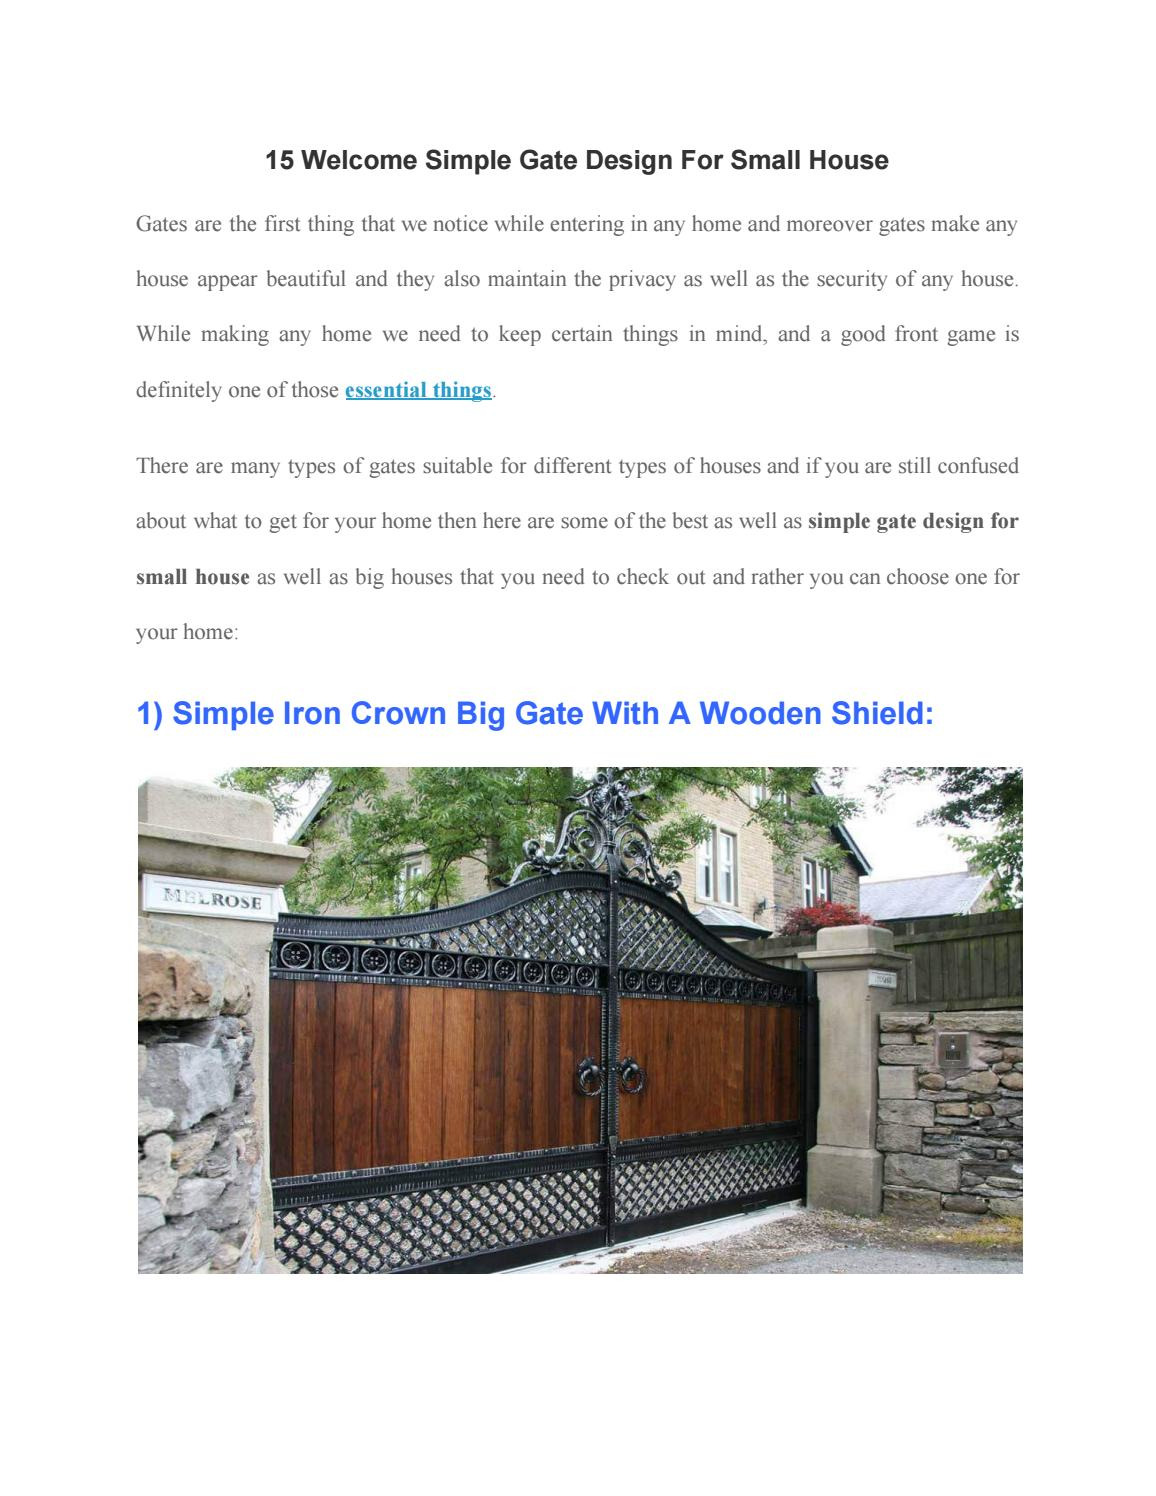 15 wel e simple gate design for s